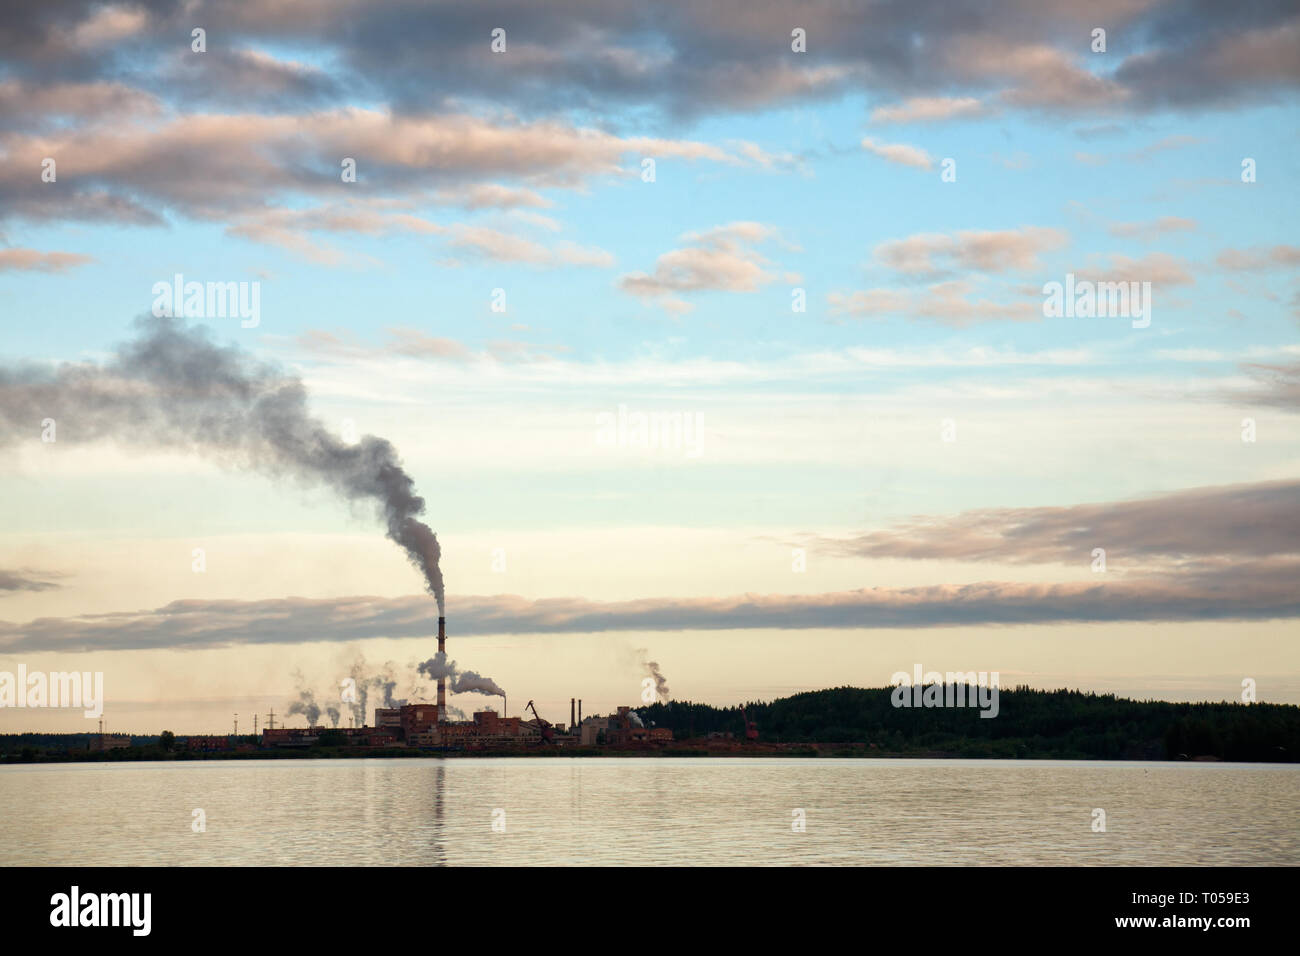 Smoking pipes of Pulp-and-paper factory on a lake in Russia - Carbon Dioxide emissions water pollution environmental issues concept - Stock Image